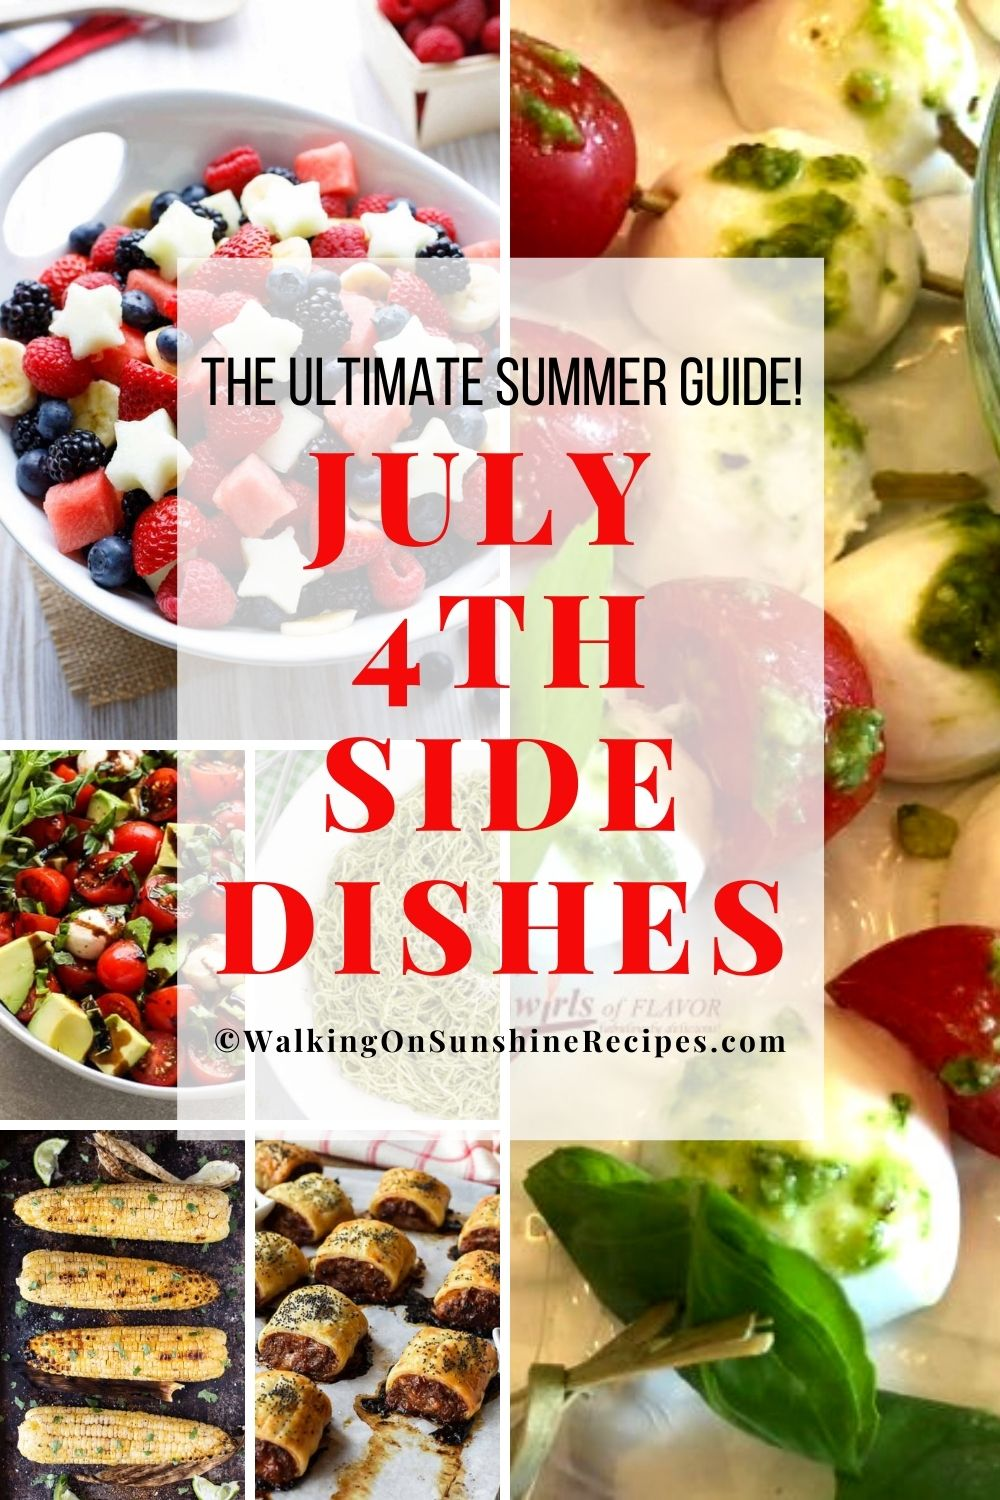 july 4th side dishes.